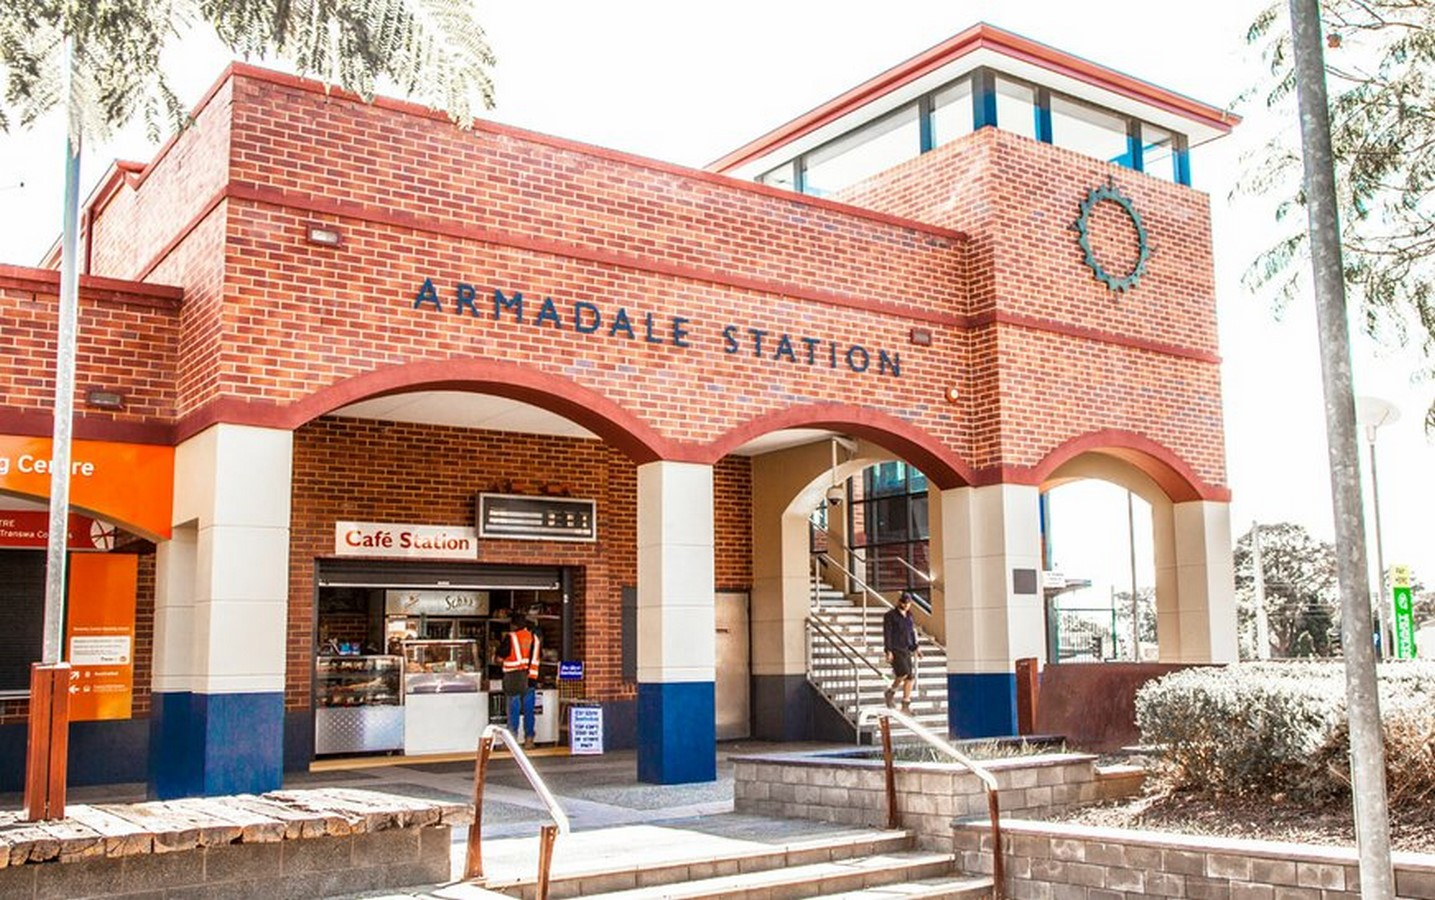 Armadale Station - Sheet2